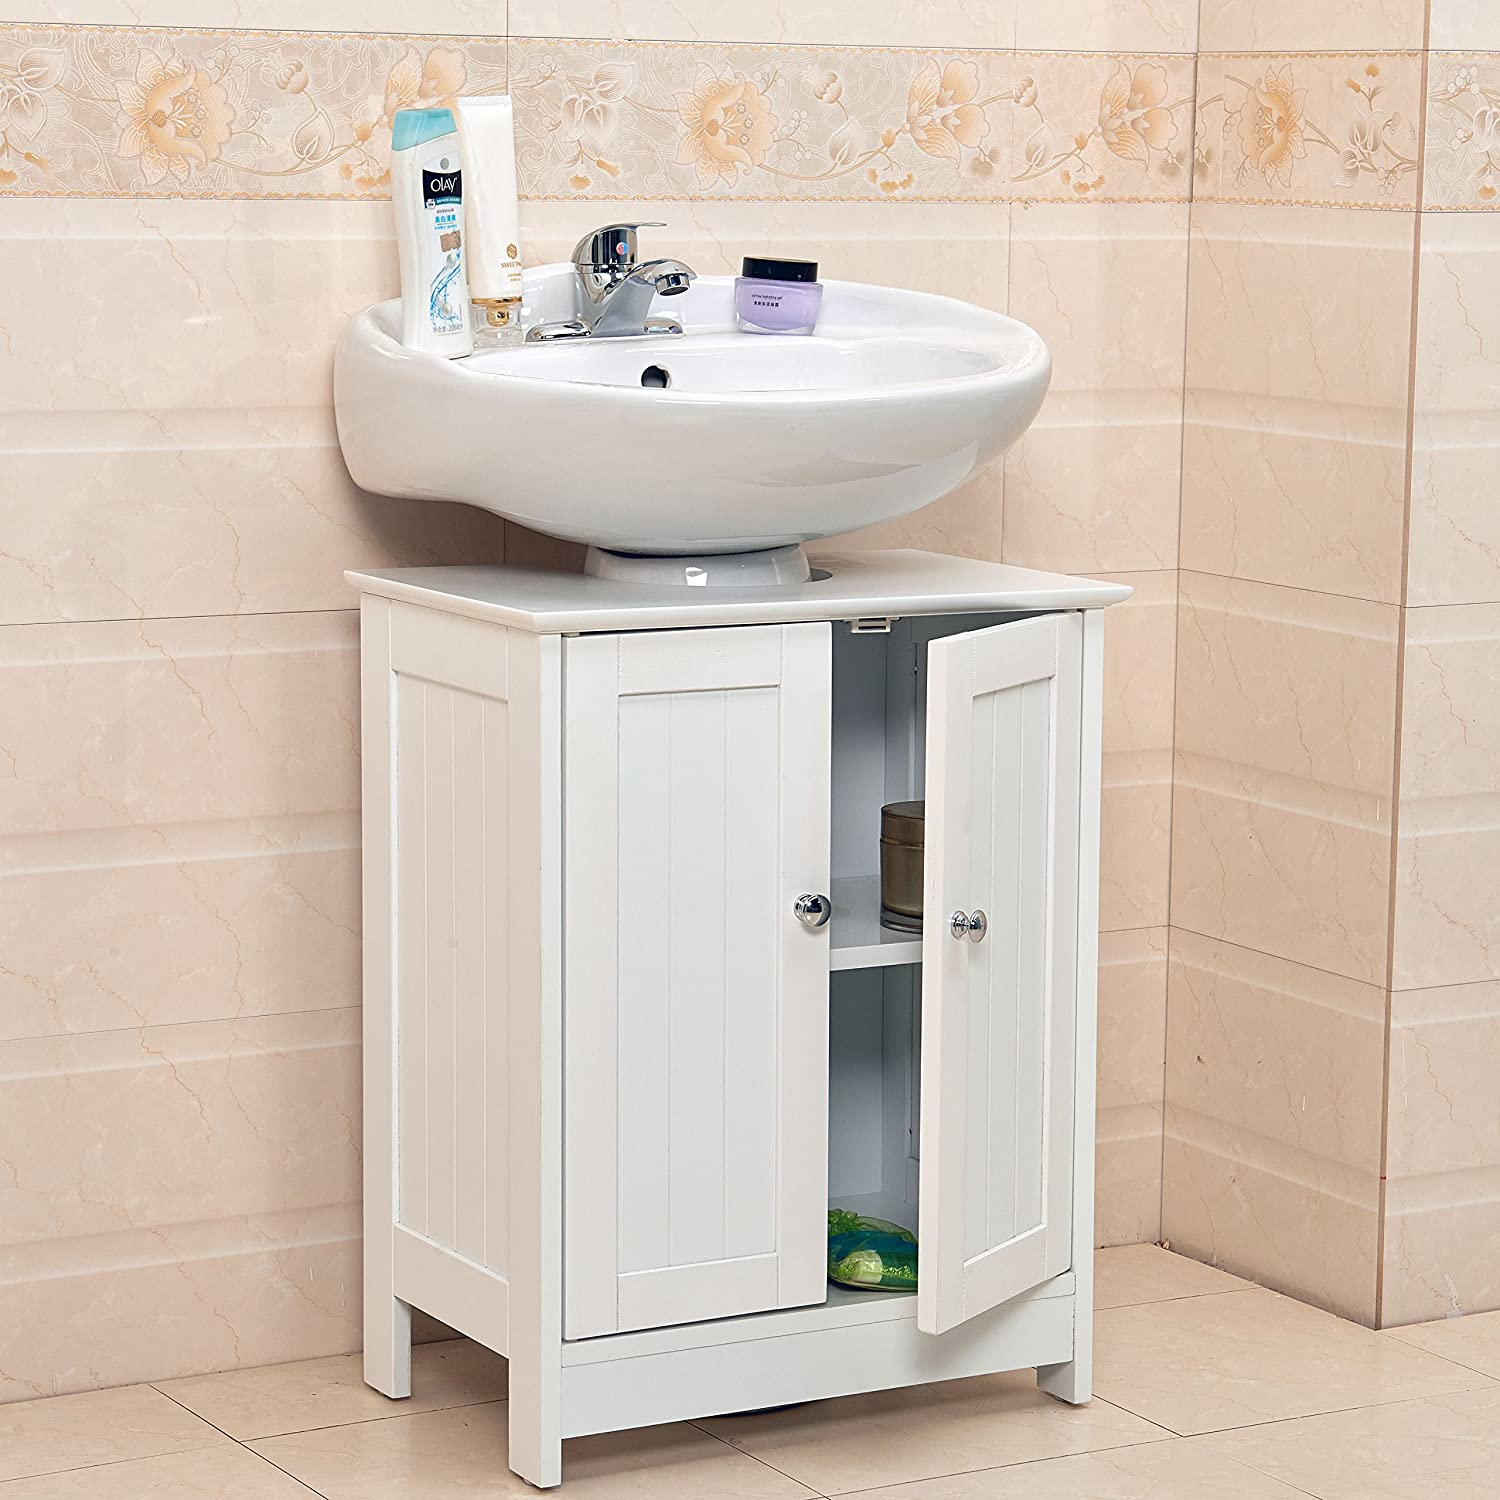 Peachy Vivo C Undersink Bathroom Cabinet Cupboard Vanity Unit Under Sink Basin Storage Wood Interior Design Ideas Ghosoteloinfo